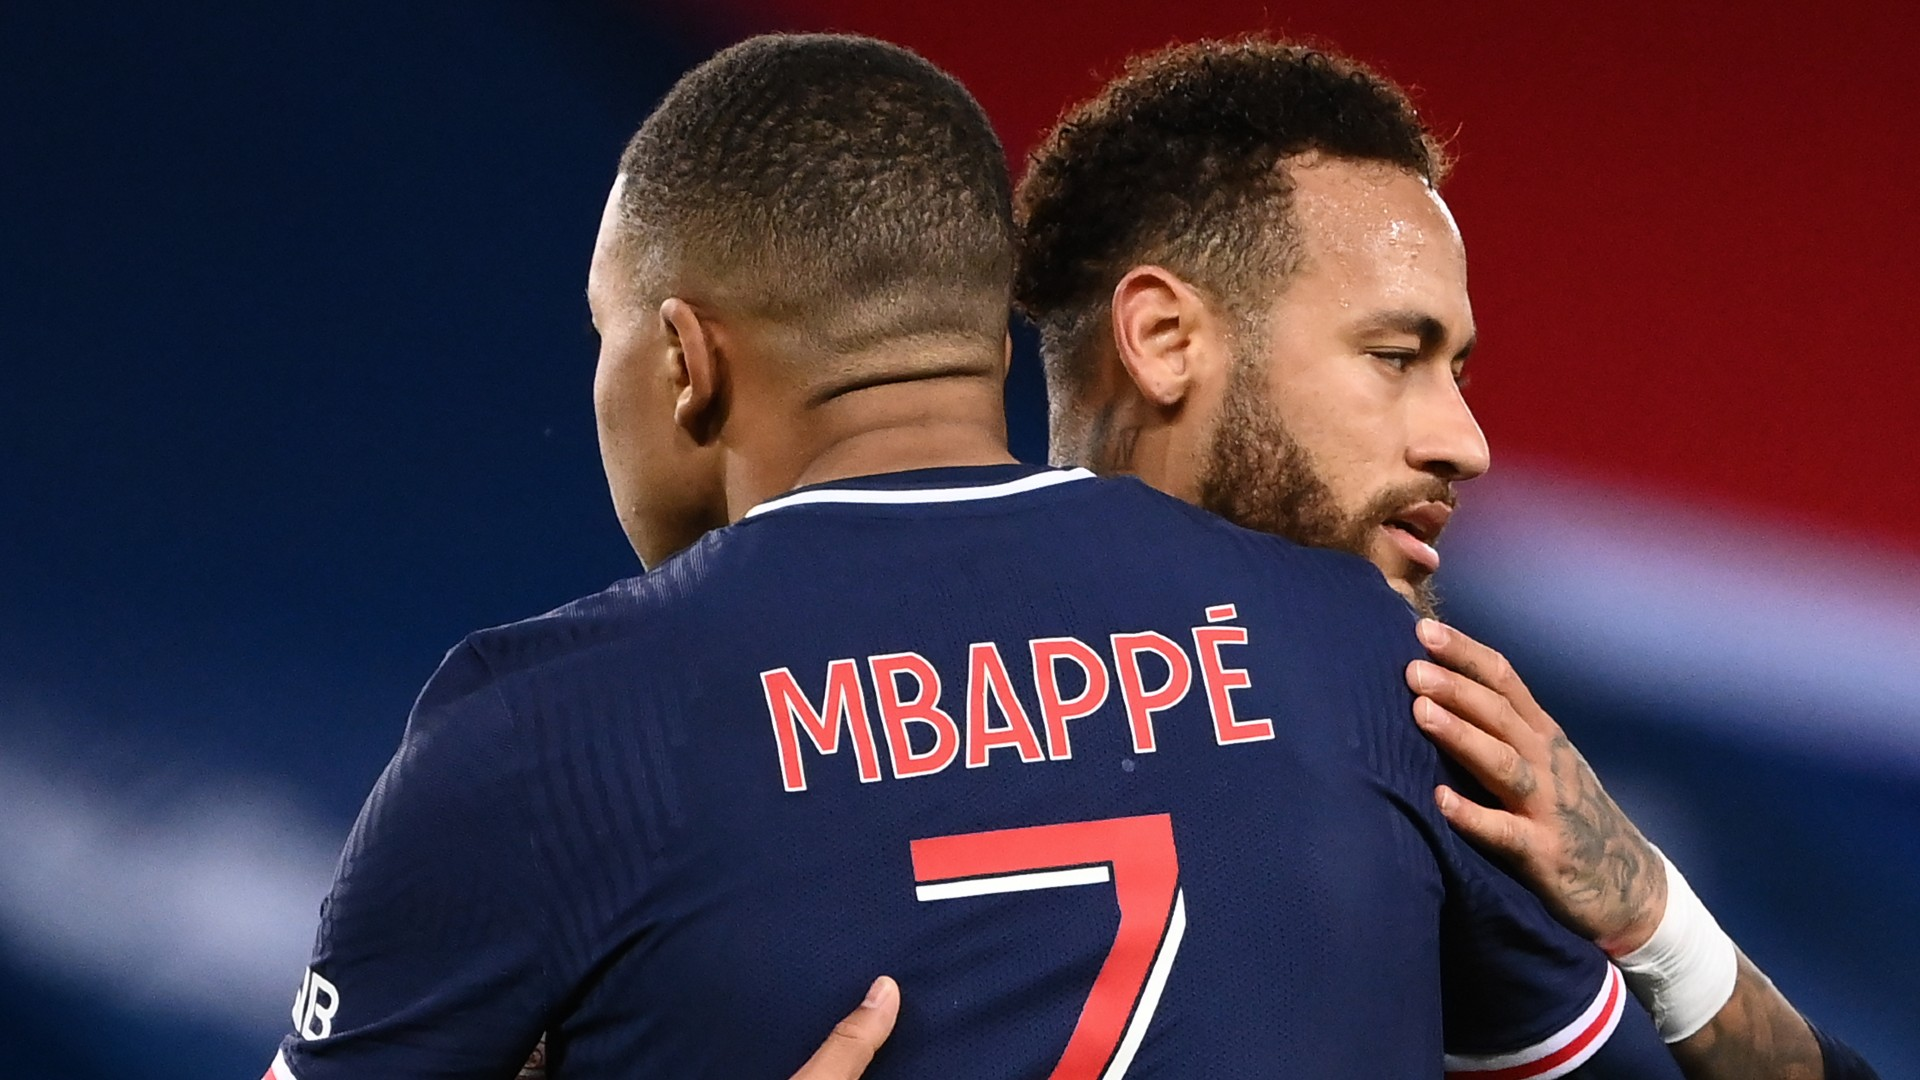 Neymar & Mbappe contracts no concern for Herrera as PSG seek to tie star duo to new deals